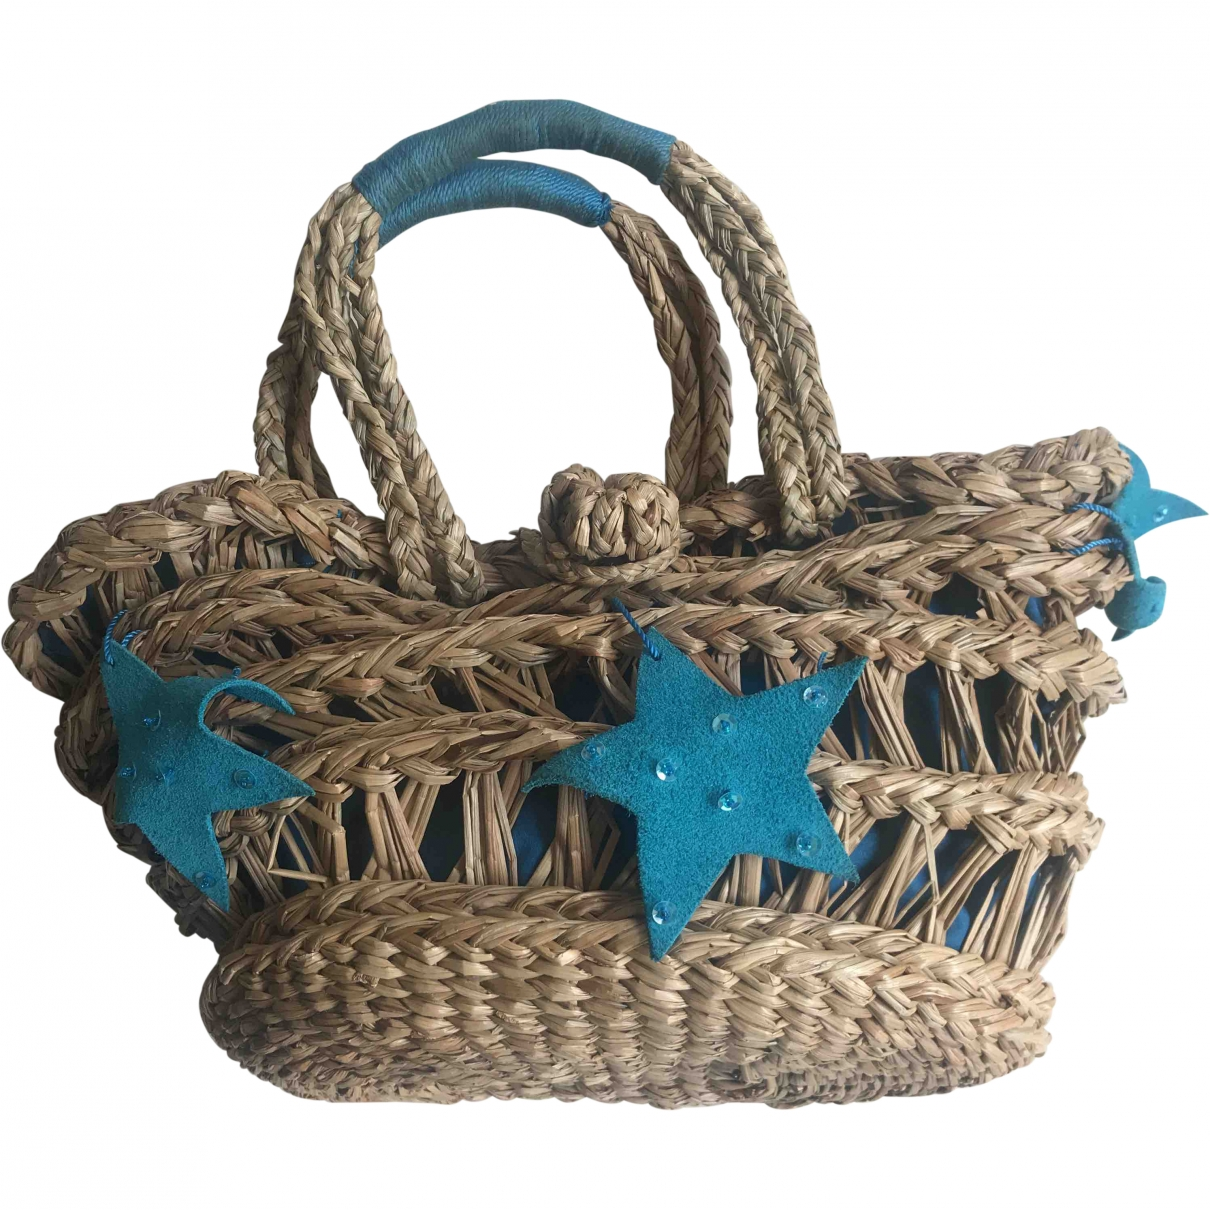 M Missoni \N Blue Wicker handbag for Women \N